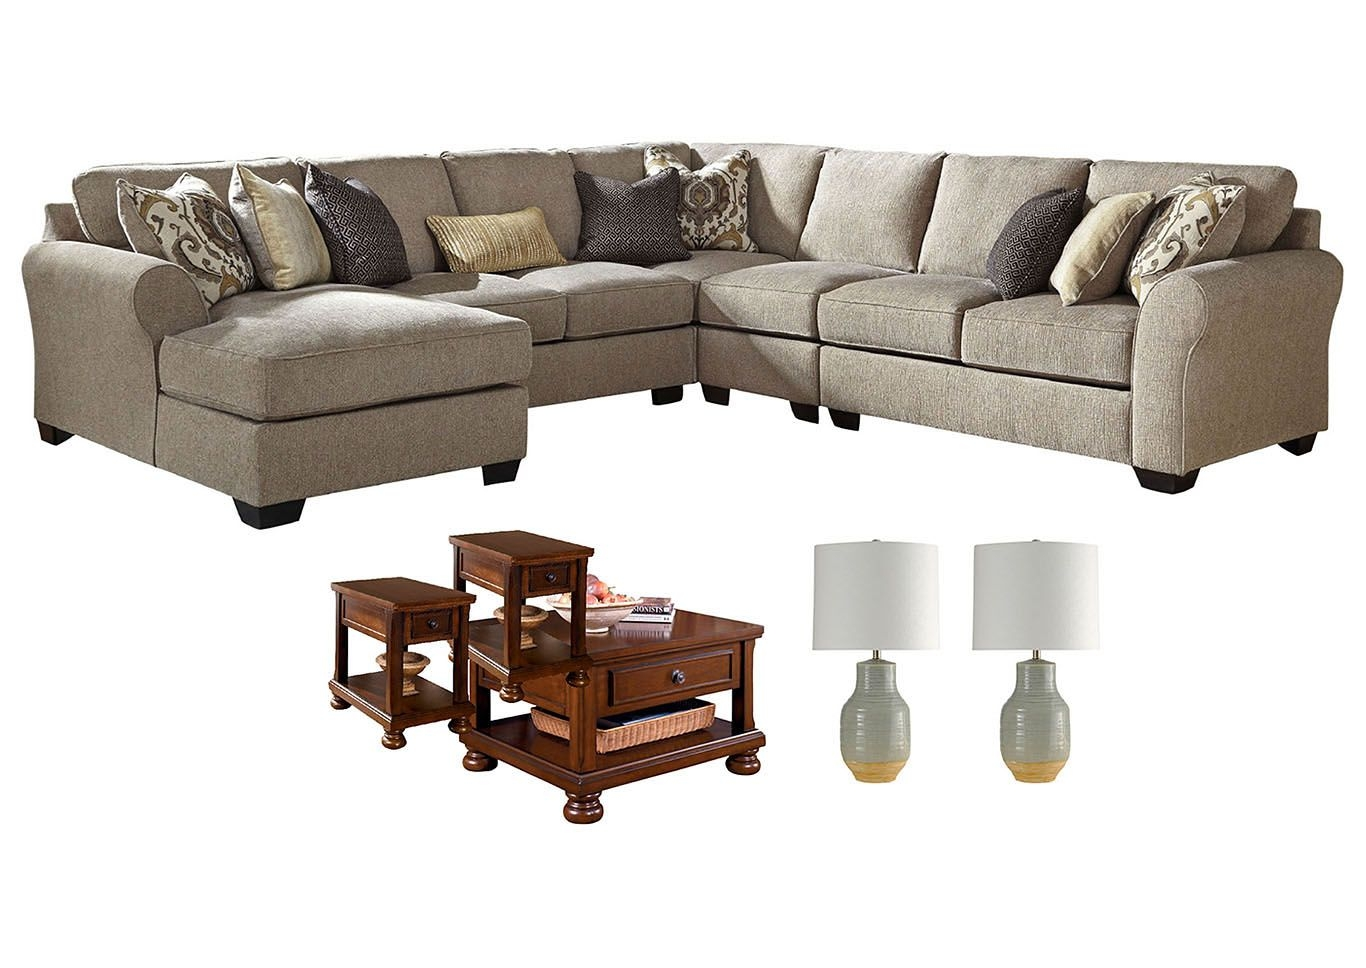 Ivan Smith Pantomine Driftwood Living Room Set